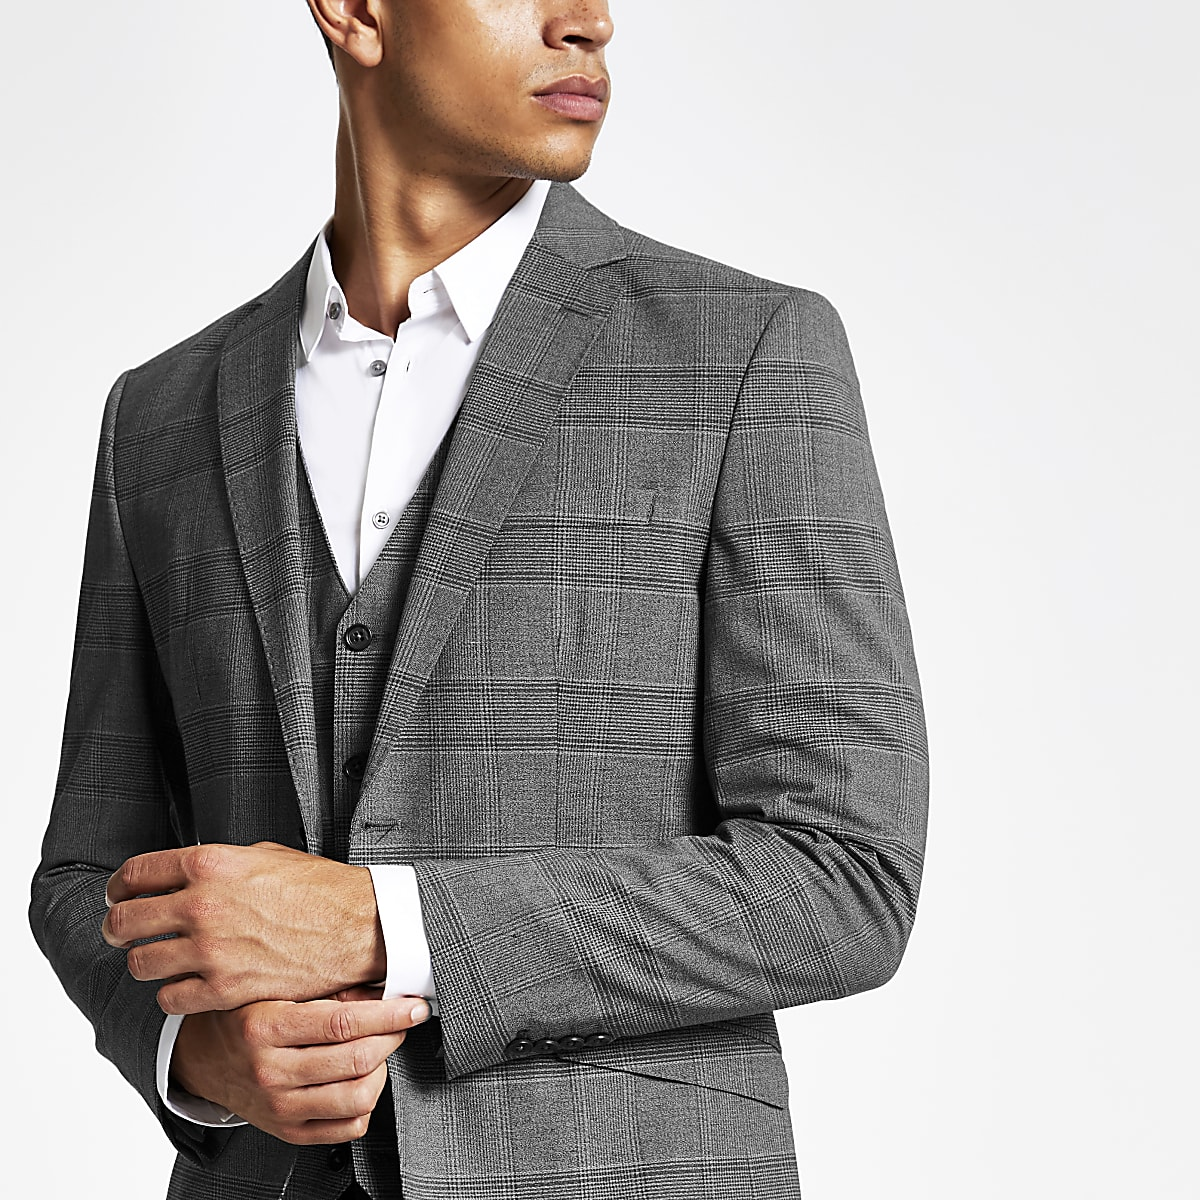 Jack and Jones – Veste de costume à carreaux grise